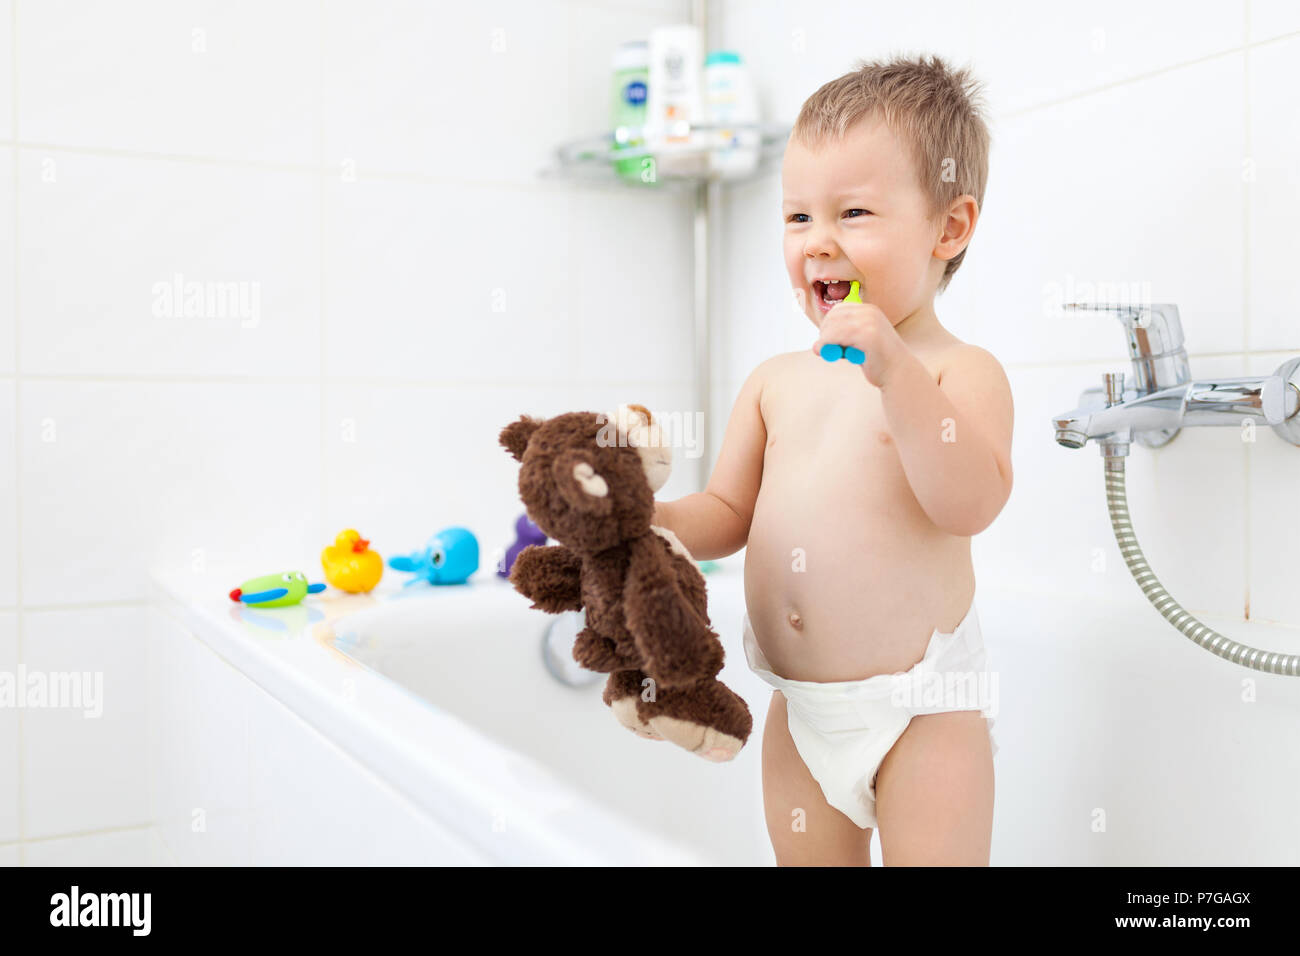 Adorable child learing how to brush his teeth in the bathroom - Stock Image